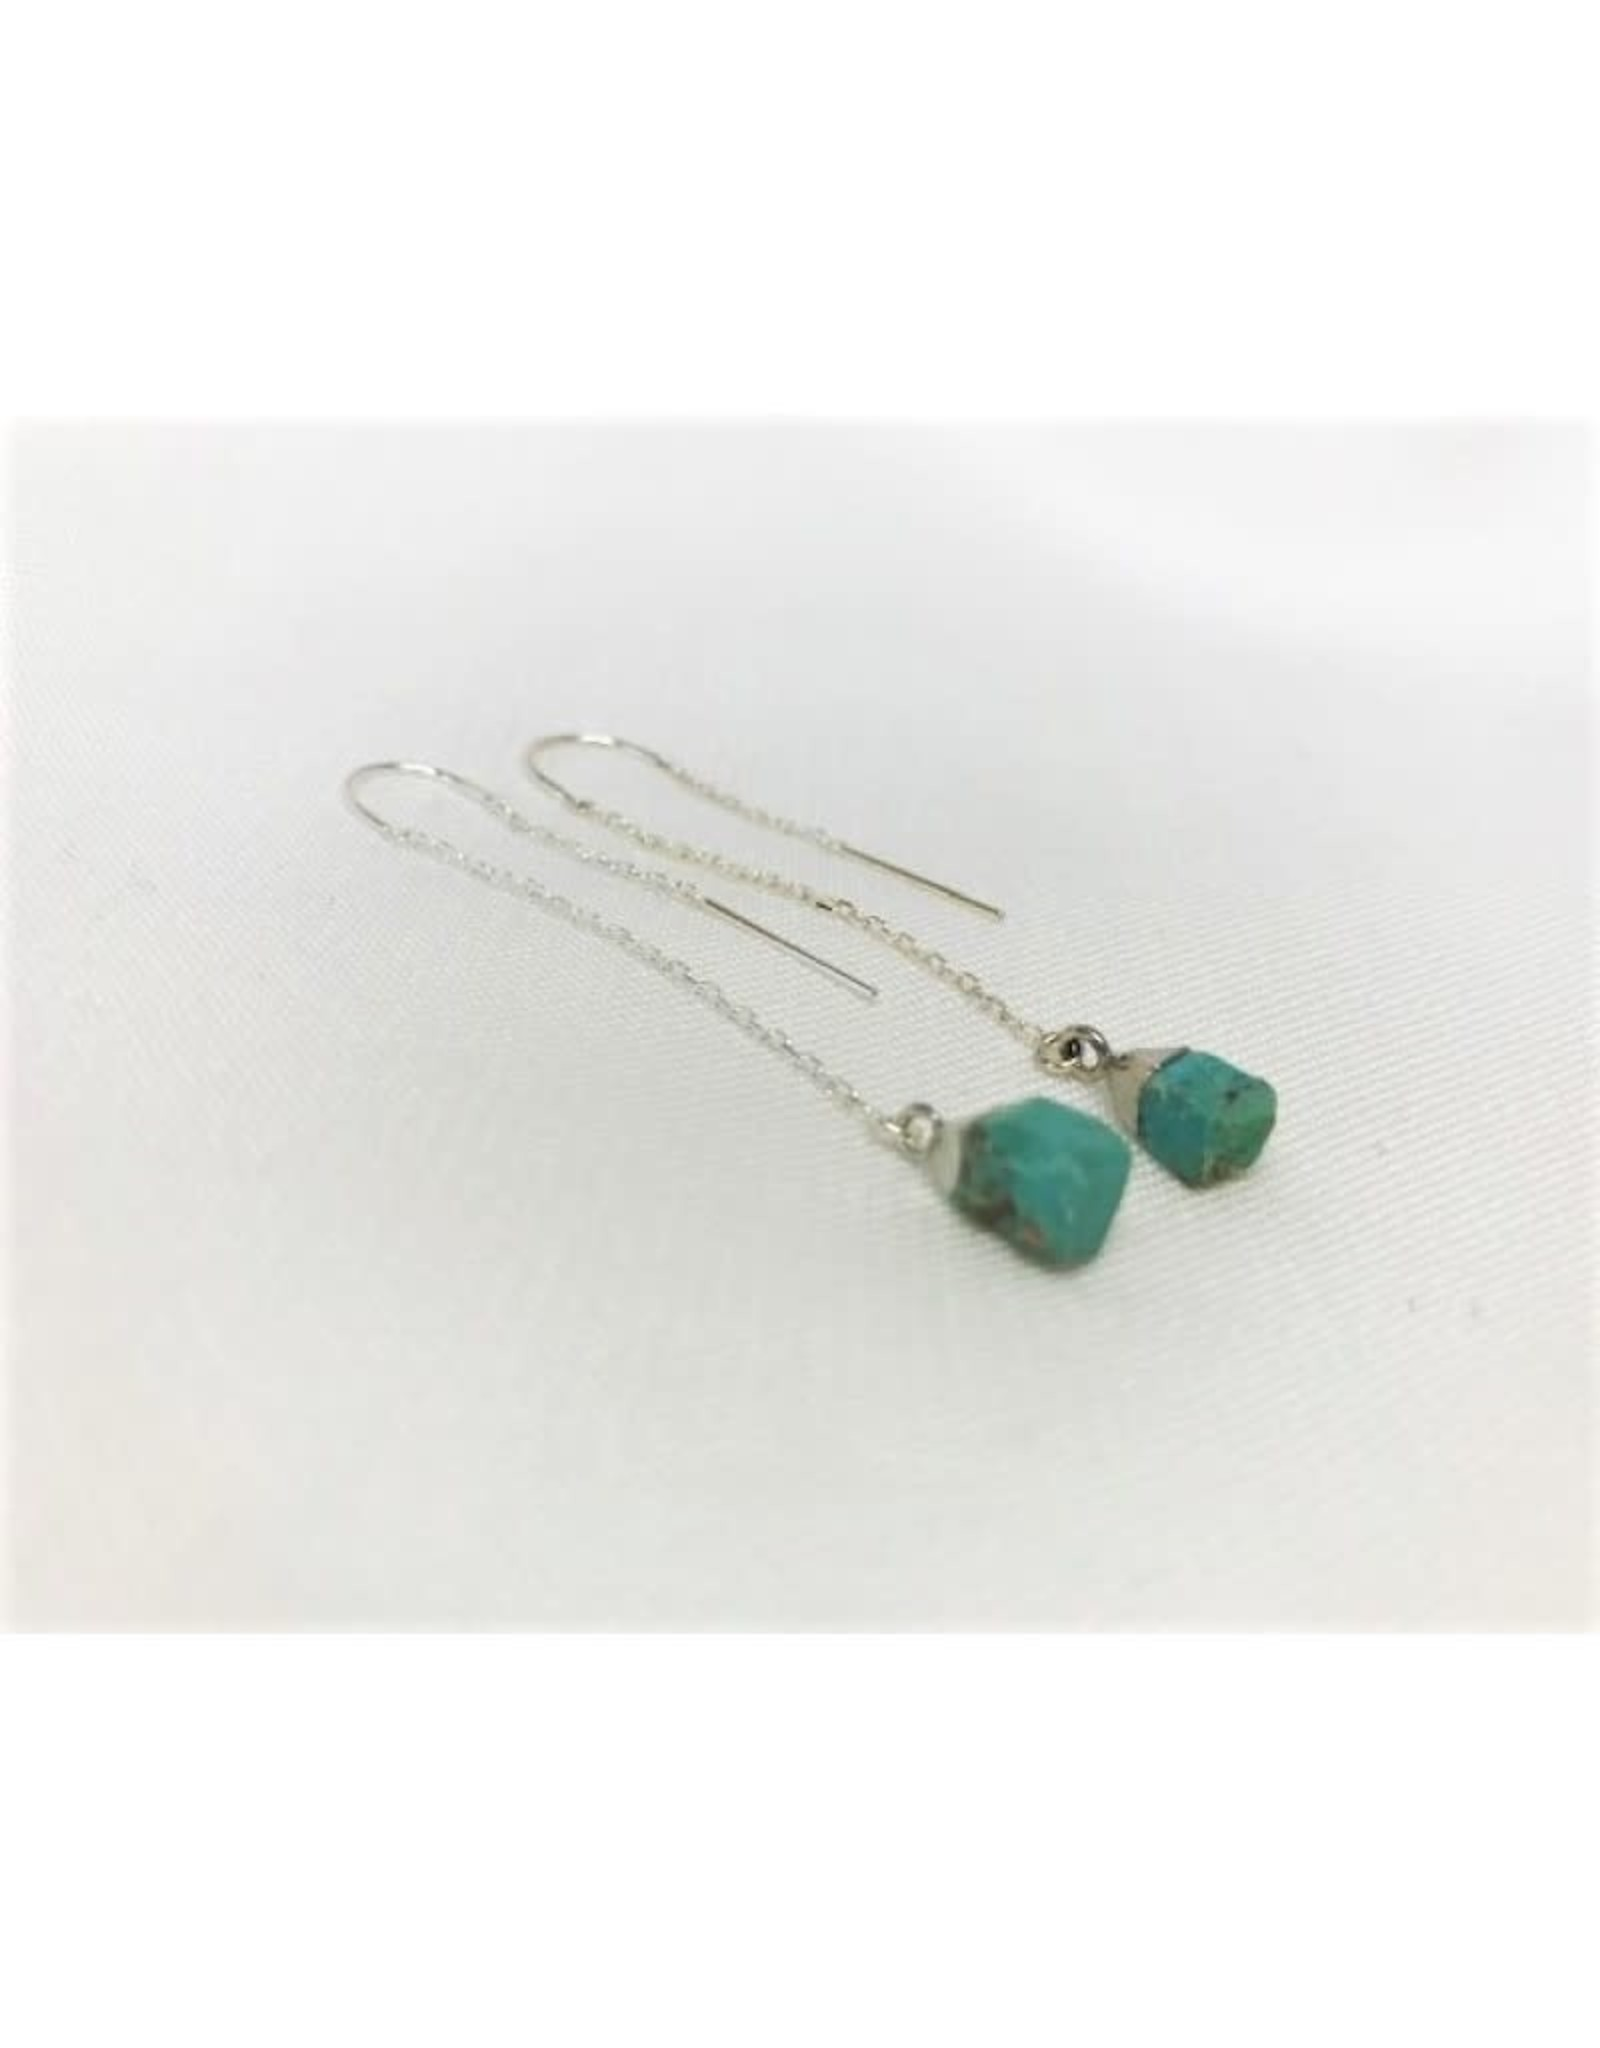 Thread Through Earrings - Turquoise/Silver